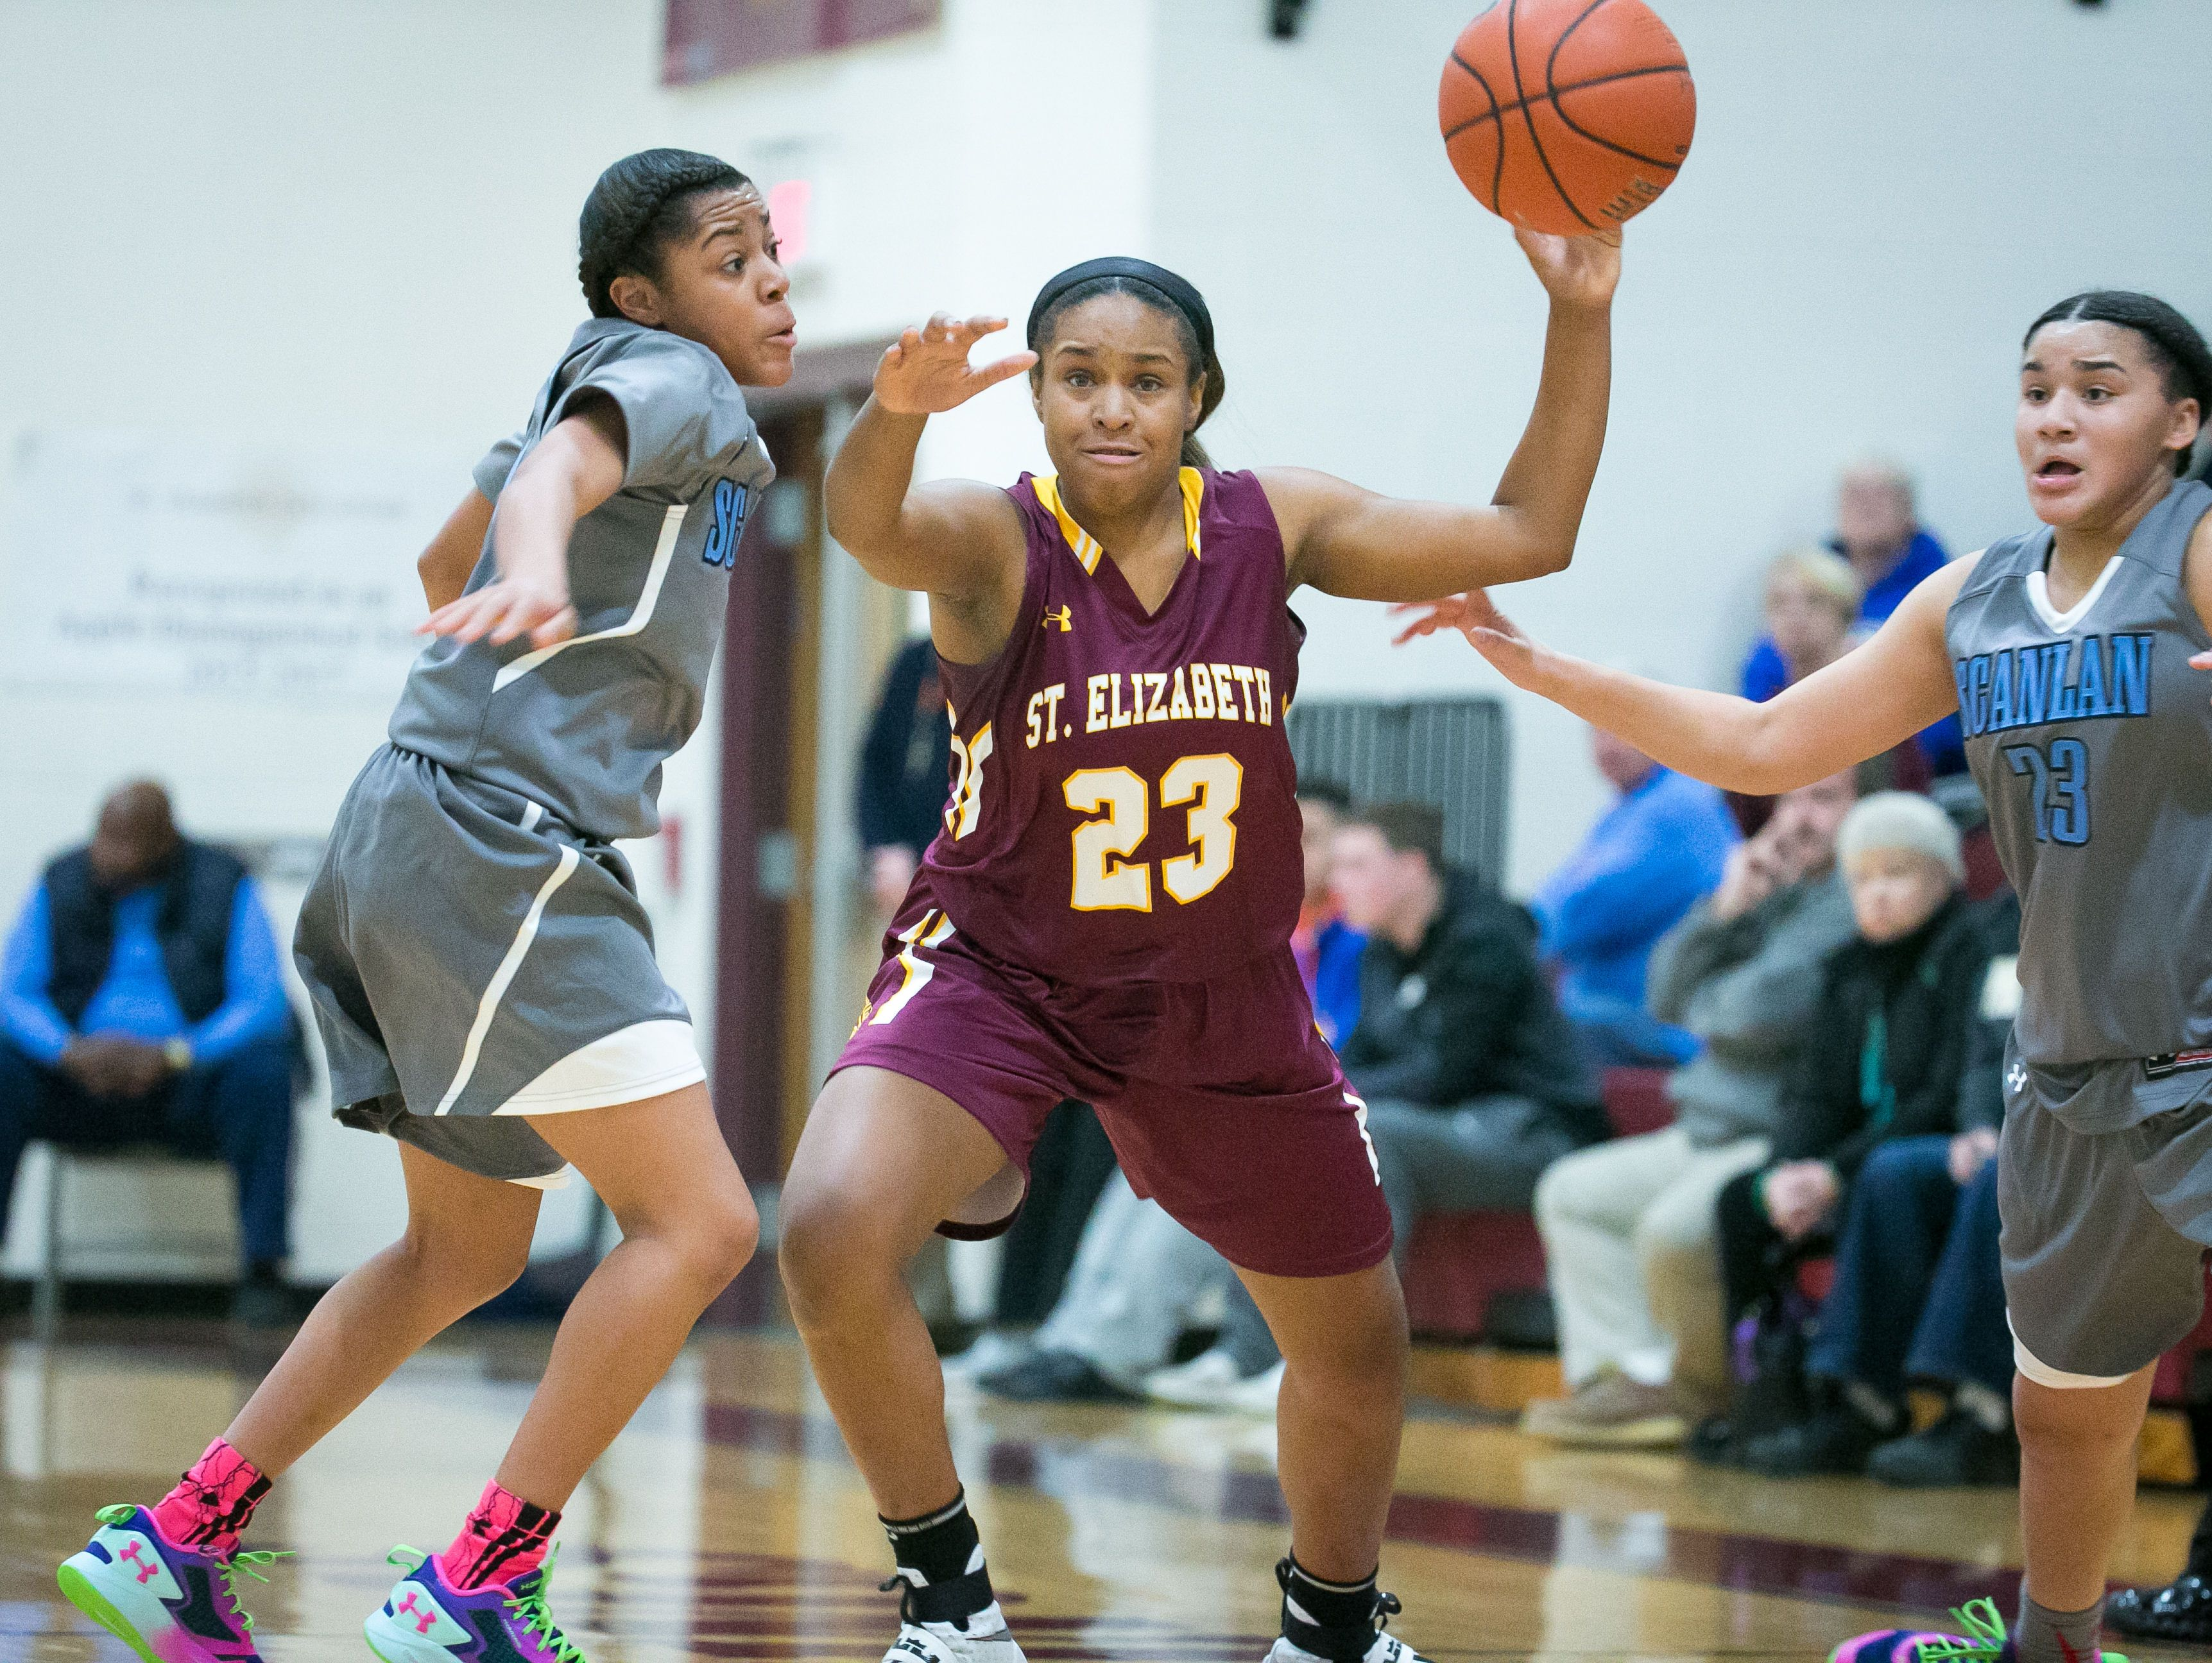 St. Elizabeth forward, Dymond Collins, gets the ball stripped away from her by Monsignor Scanlan guard, Channel Williams (left).